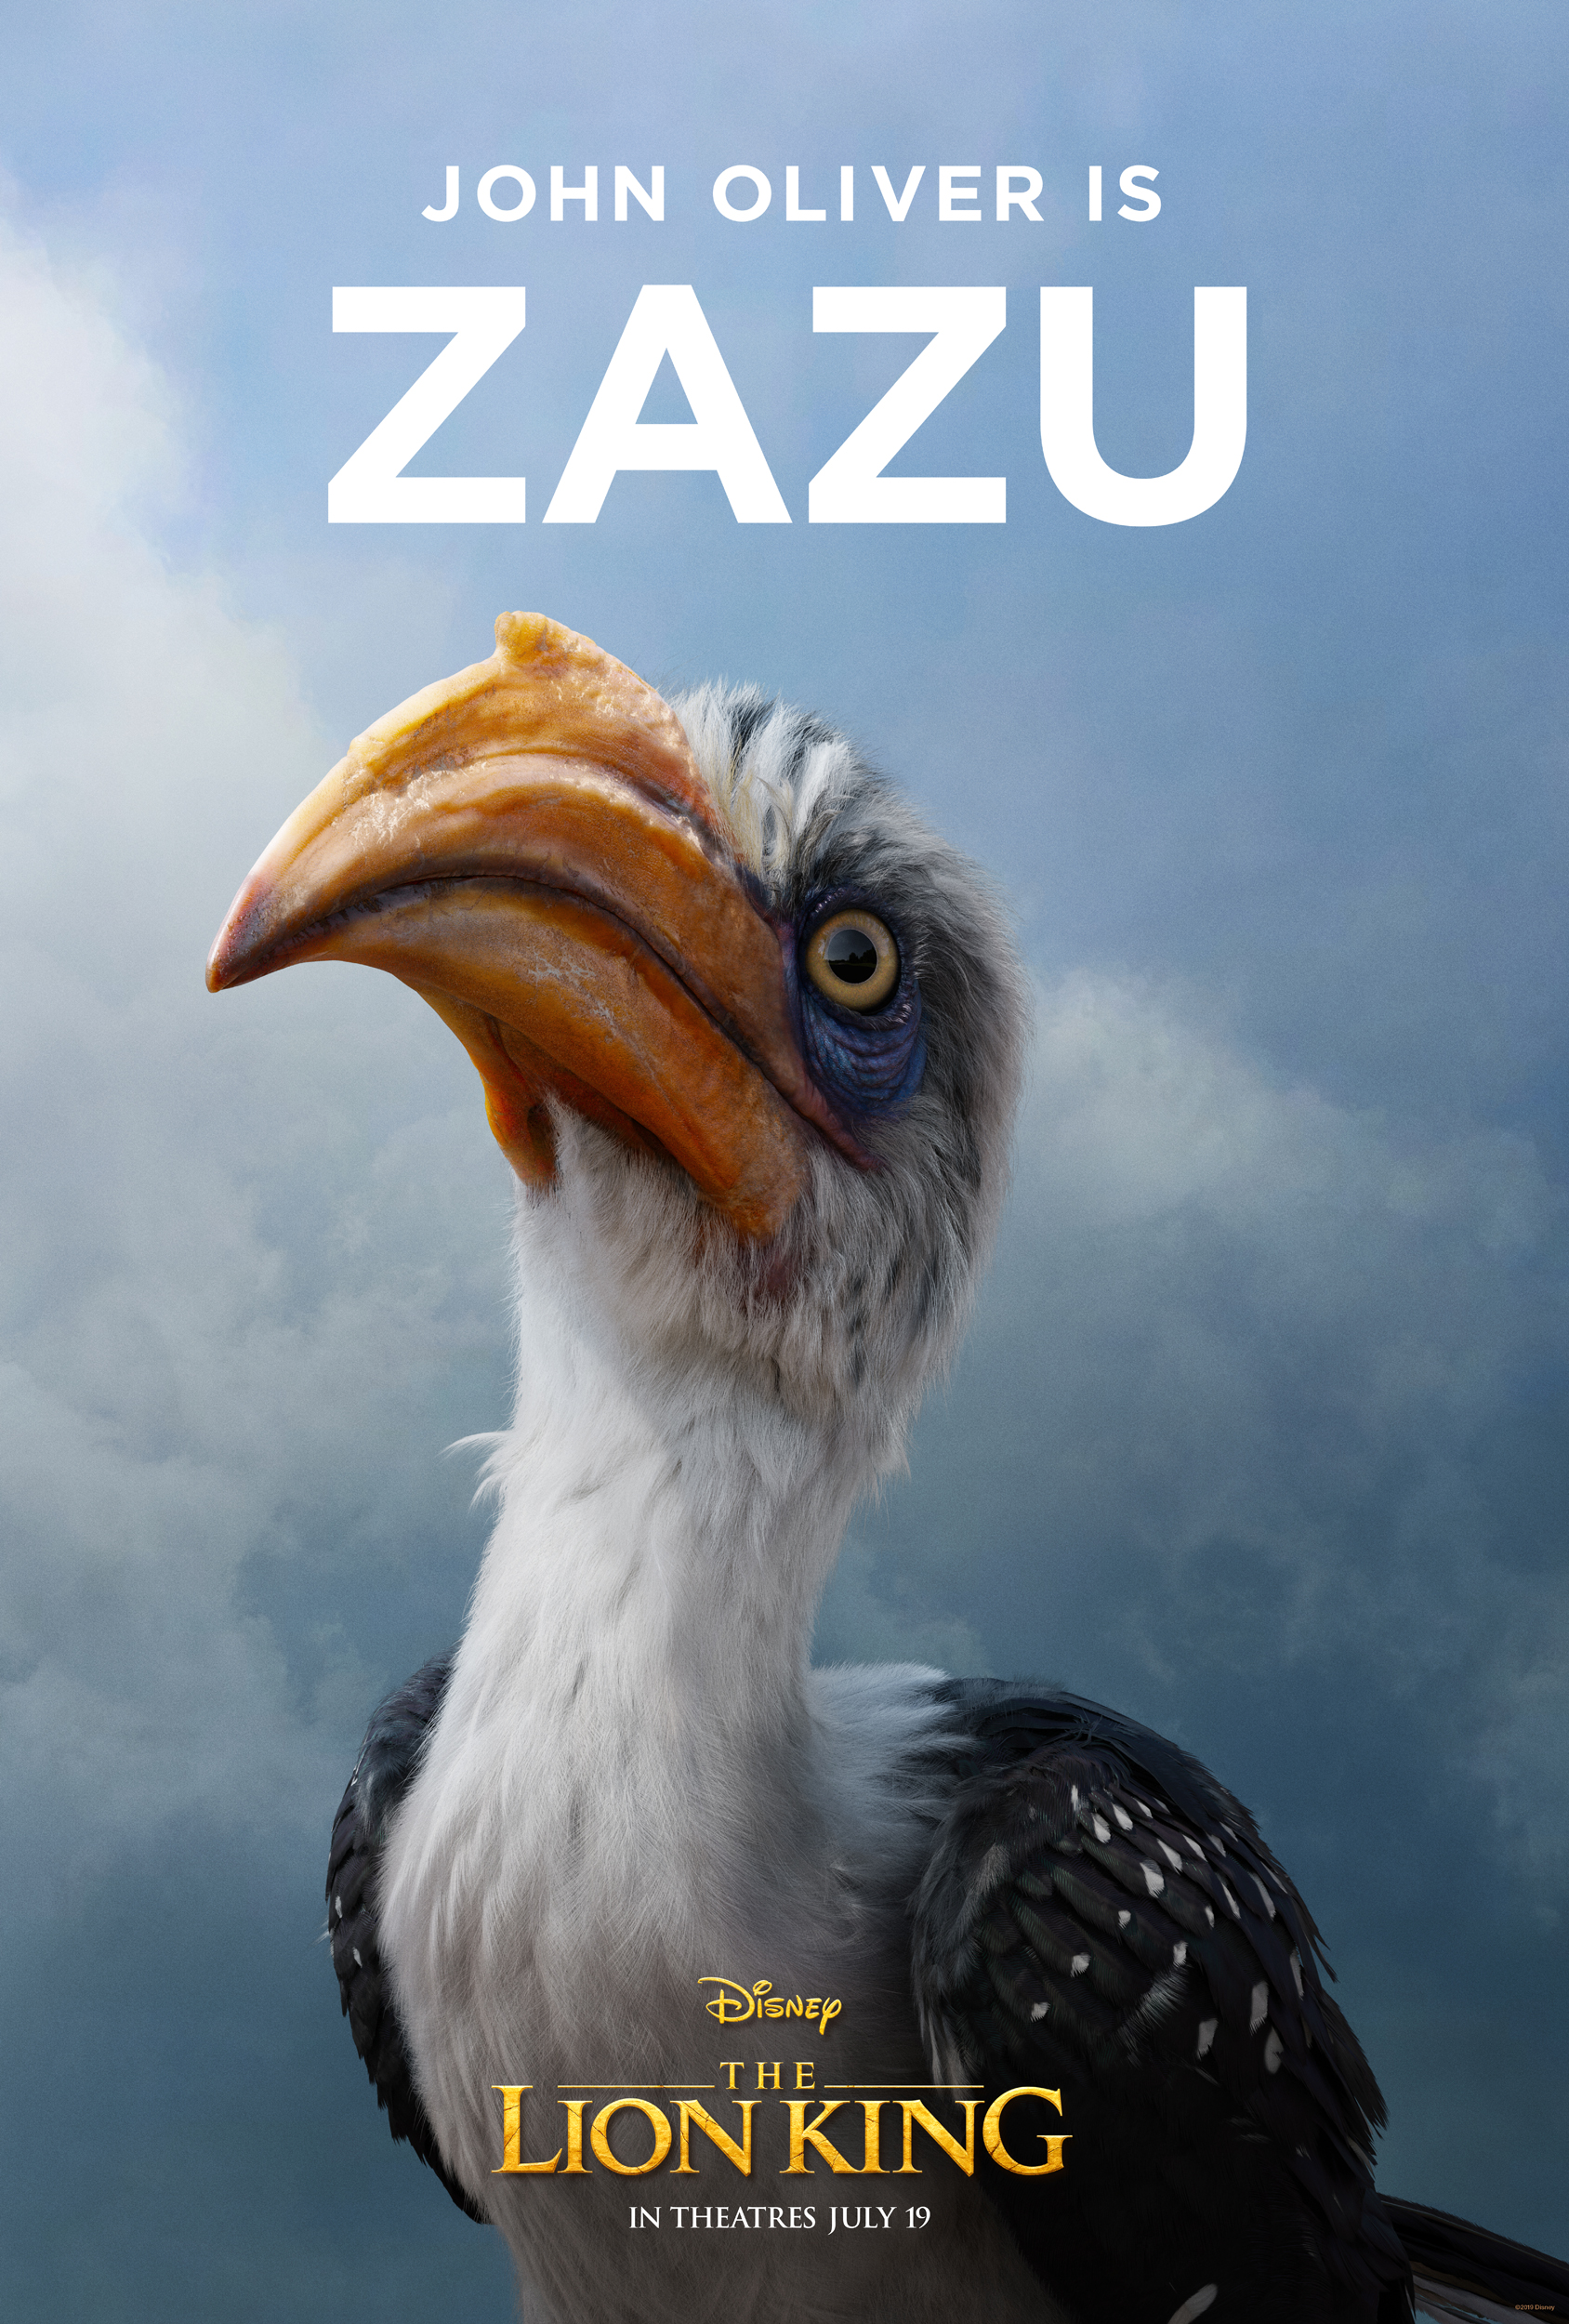 THE LION KING Character Posters Show Very Realistic-Looking Animals_9